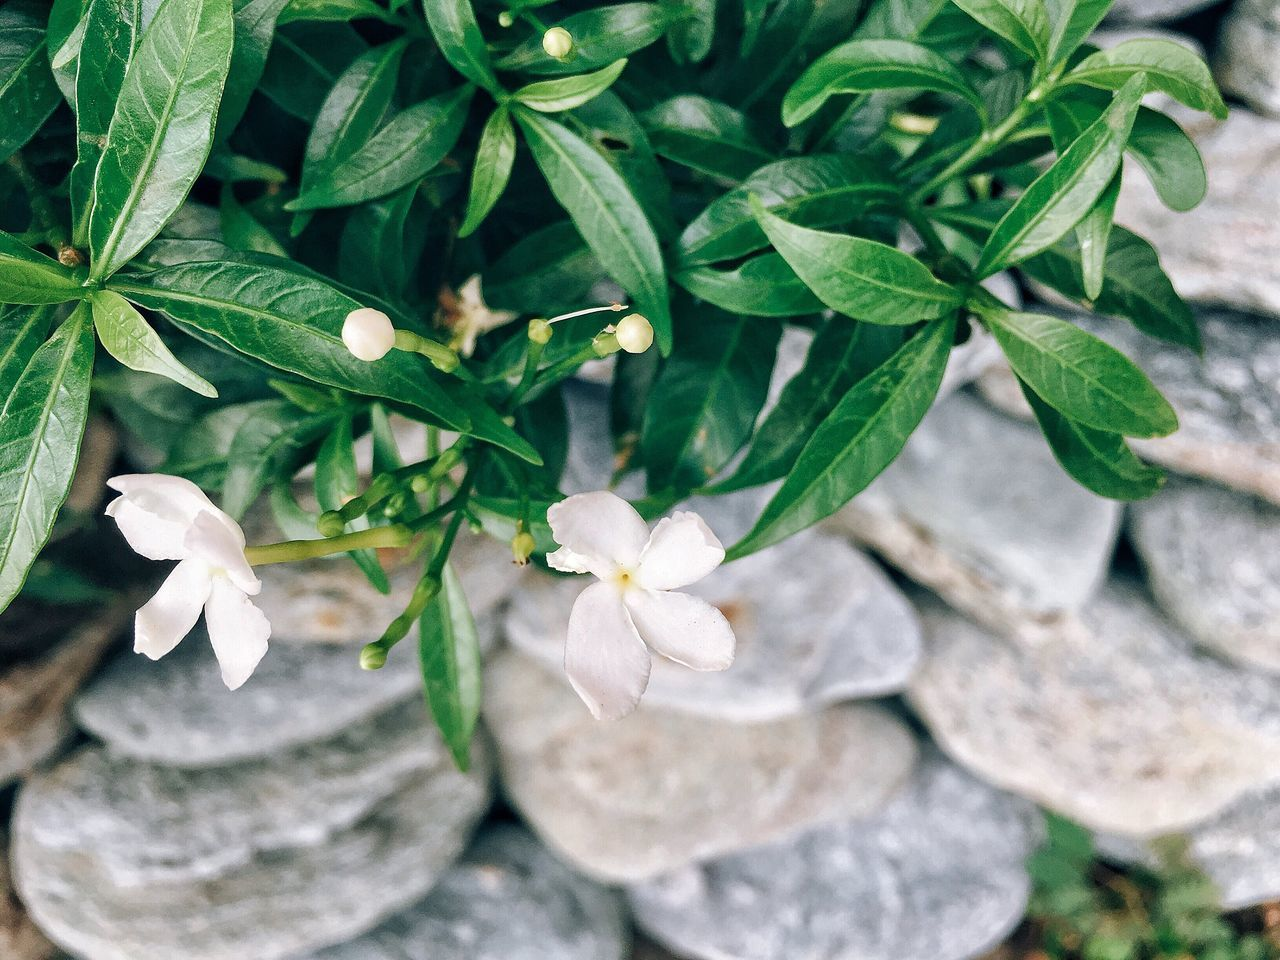 Leaf Growth Plant Green Color Nature No People Day Outdoors Close-up Freshness Petal Fragility Beauty In Nature Flower Flower Head Periwinkle Eyeem Philippines